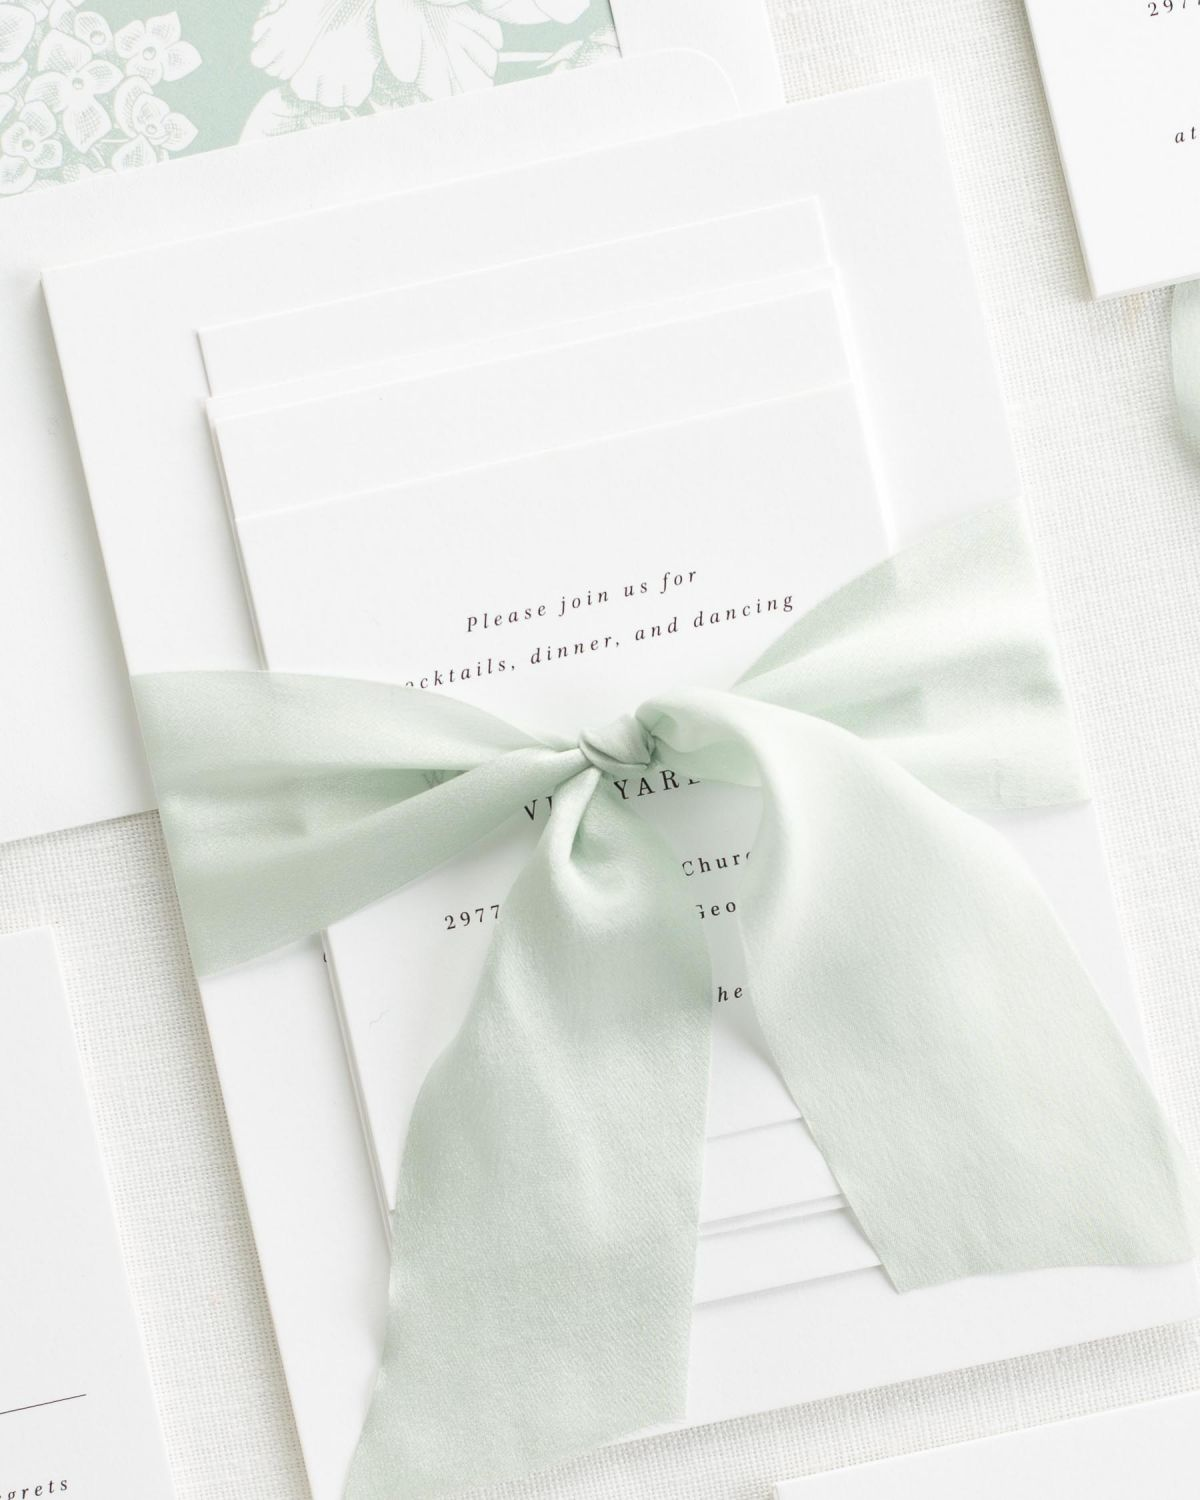 Complete Wedding Stationery Set with Pale Green Ribbon and Enclosures